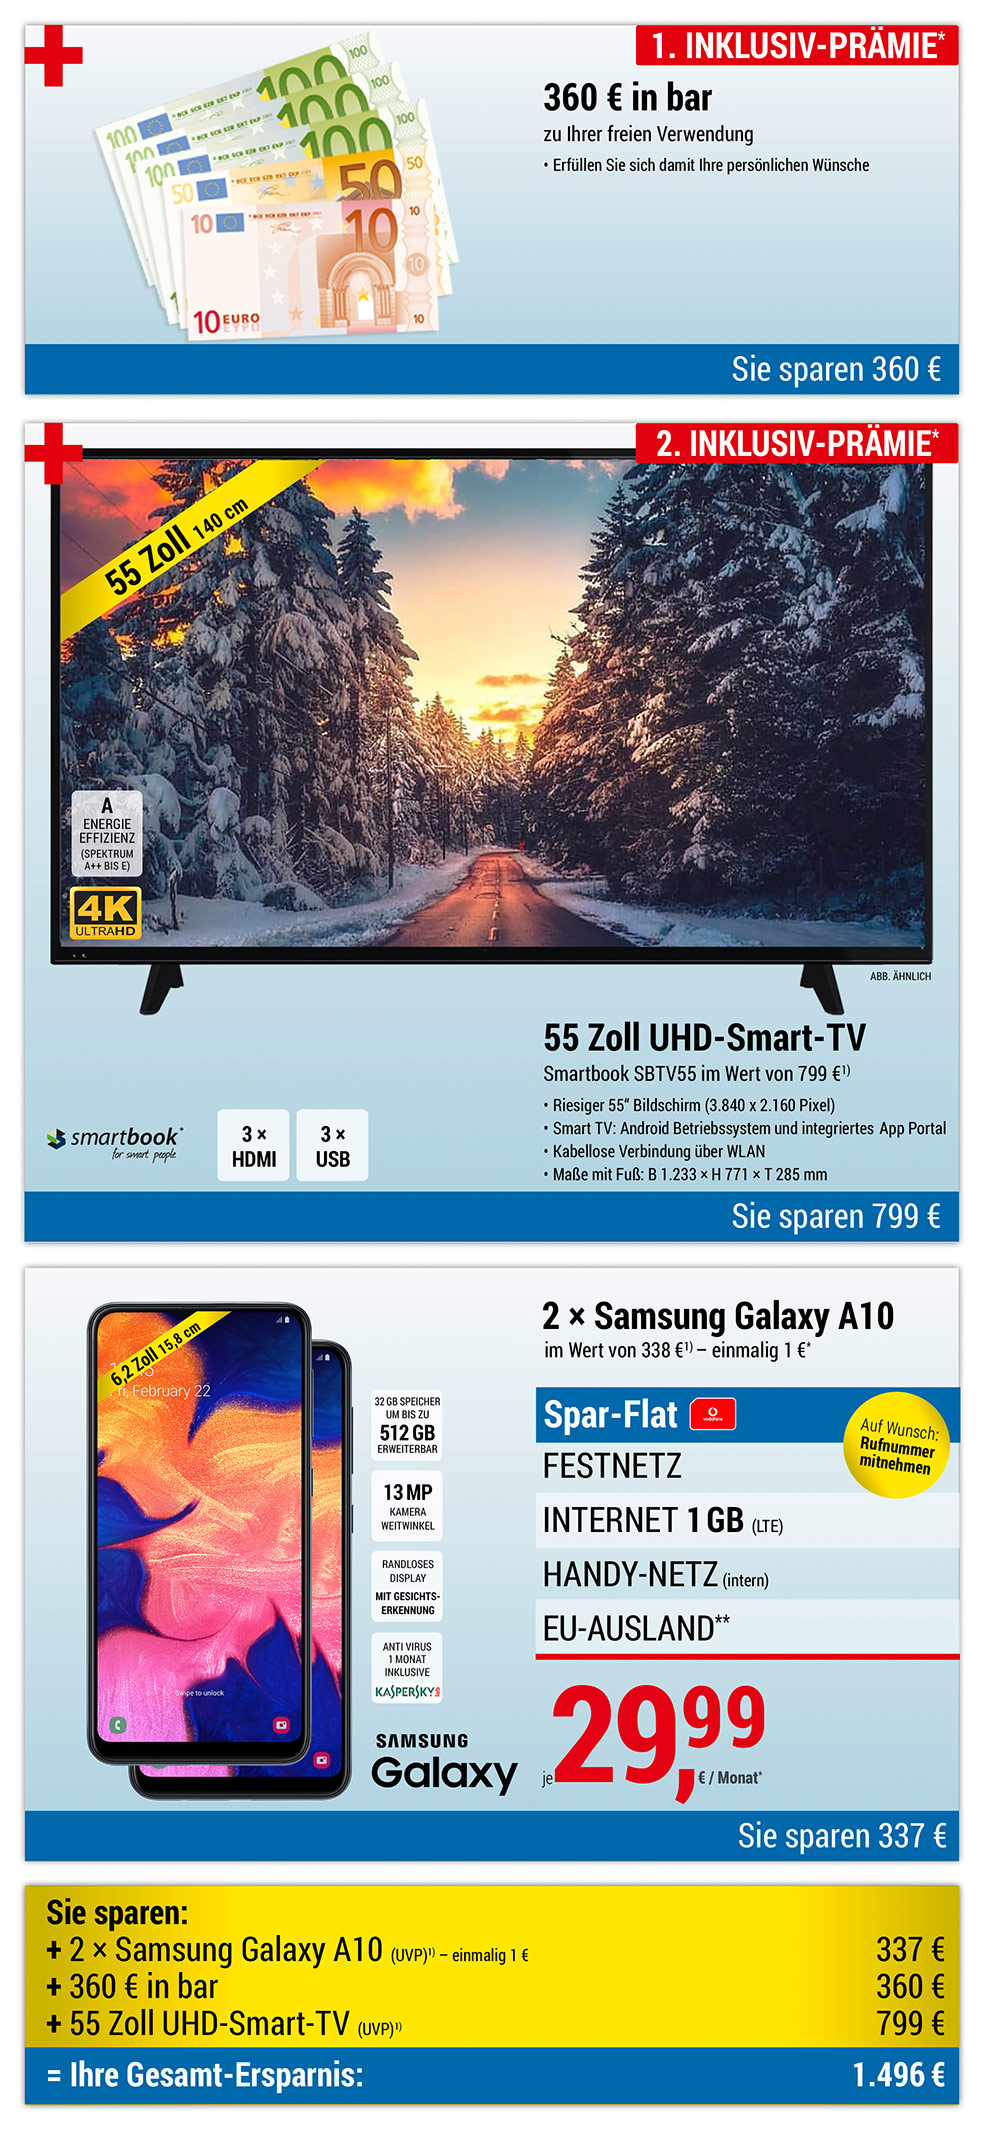 360 € bar + 55 Zoll UHD-Smart-TV INKLUSIVE + 2 × Samsung Galaxy A10